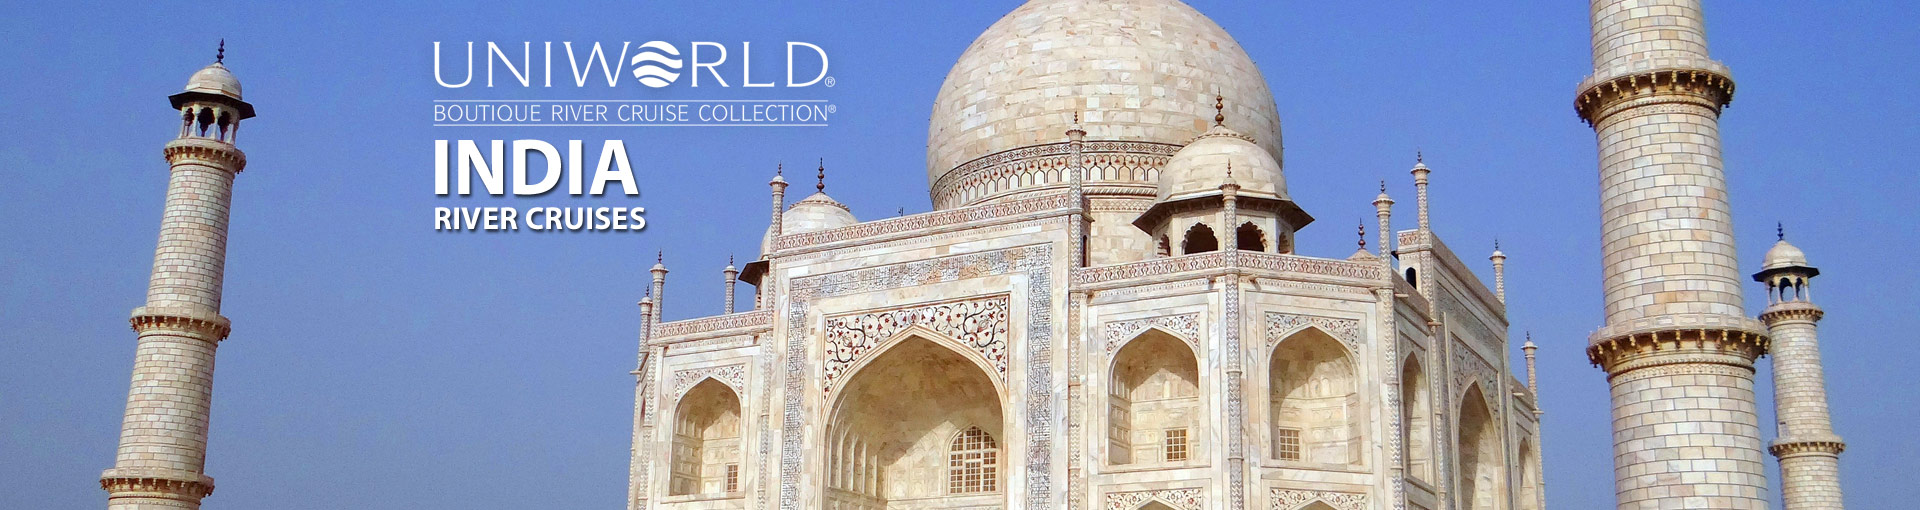 Uniworld River Cruises to India